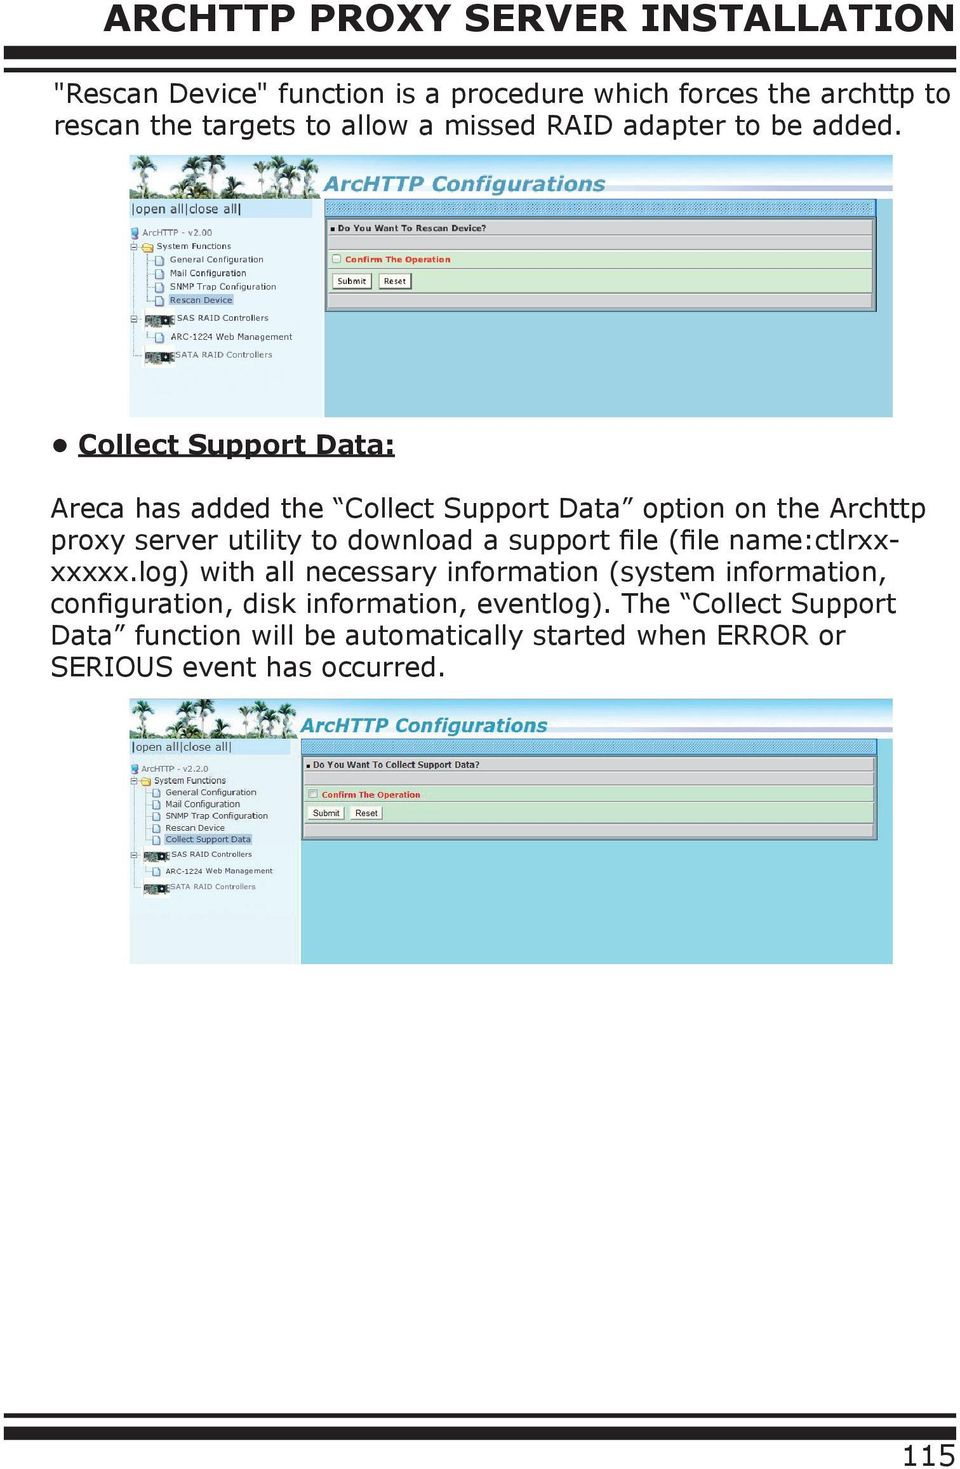 Collect Support Data: Areca has added the Collect Support Data option on the Archttp proxy server utility to download a support file